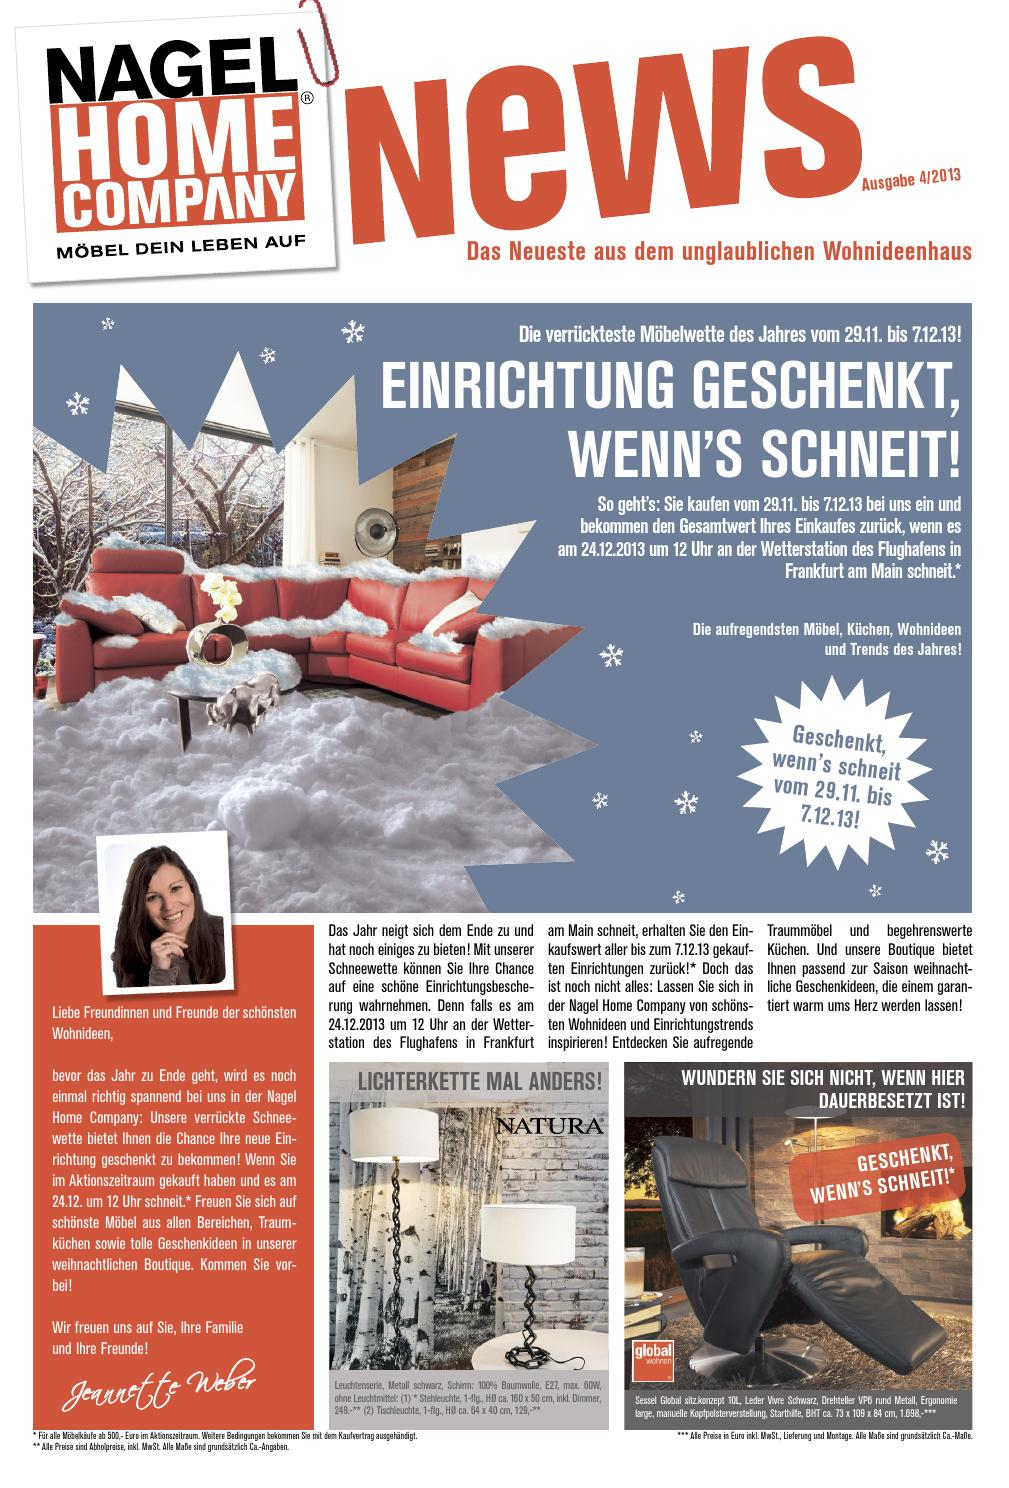 Nagel Home Company News 04/2013 by Perspektive Werbeagentur - issuu